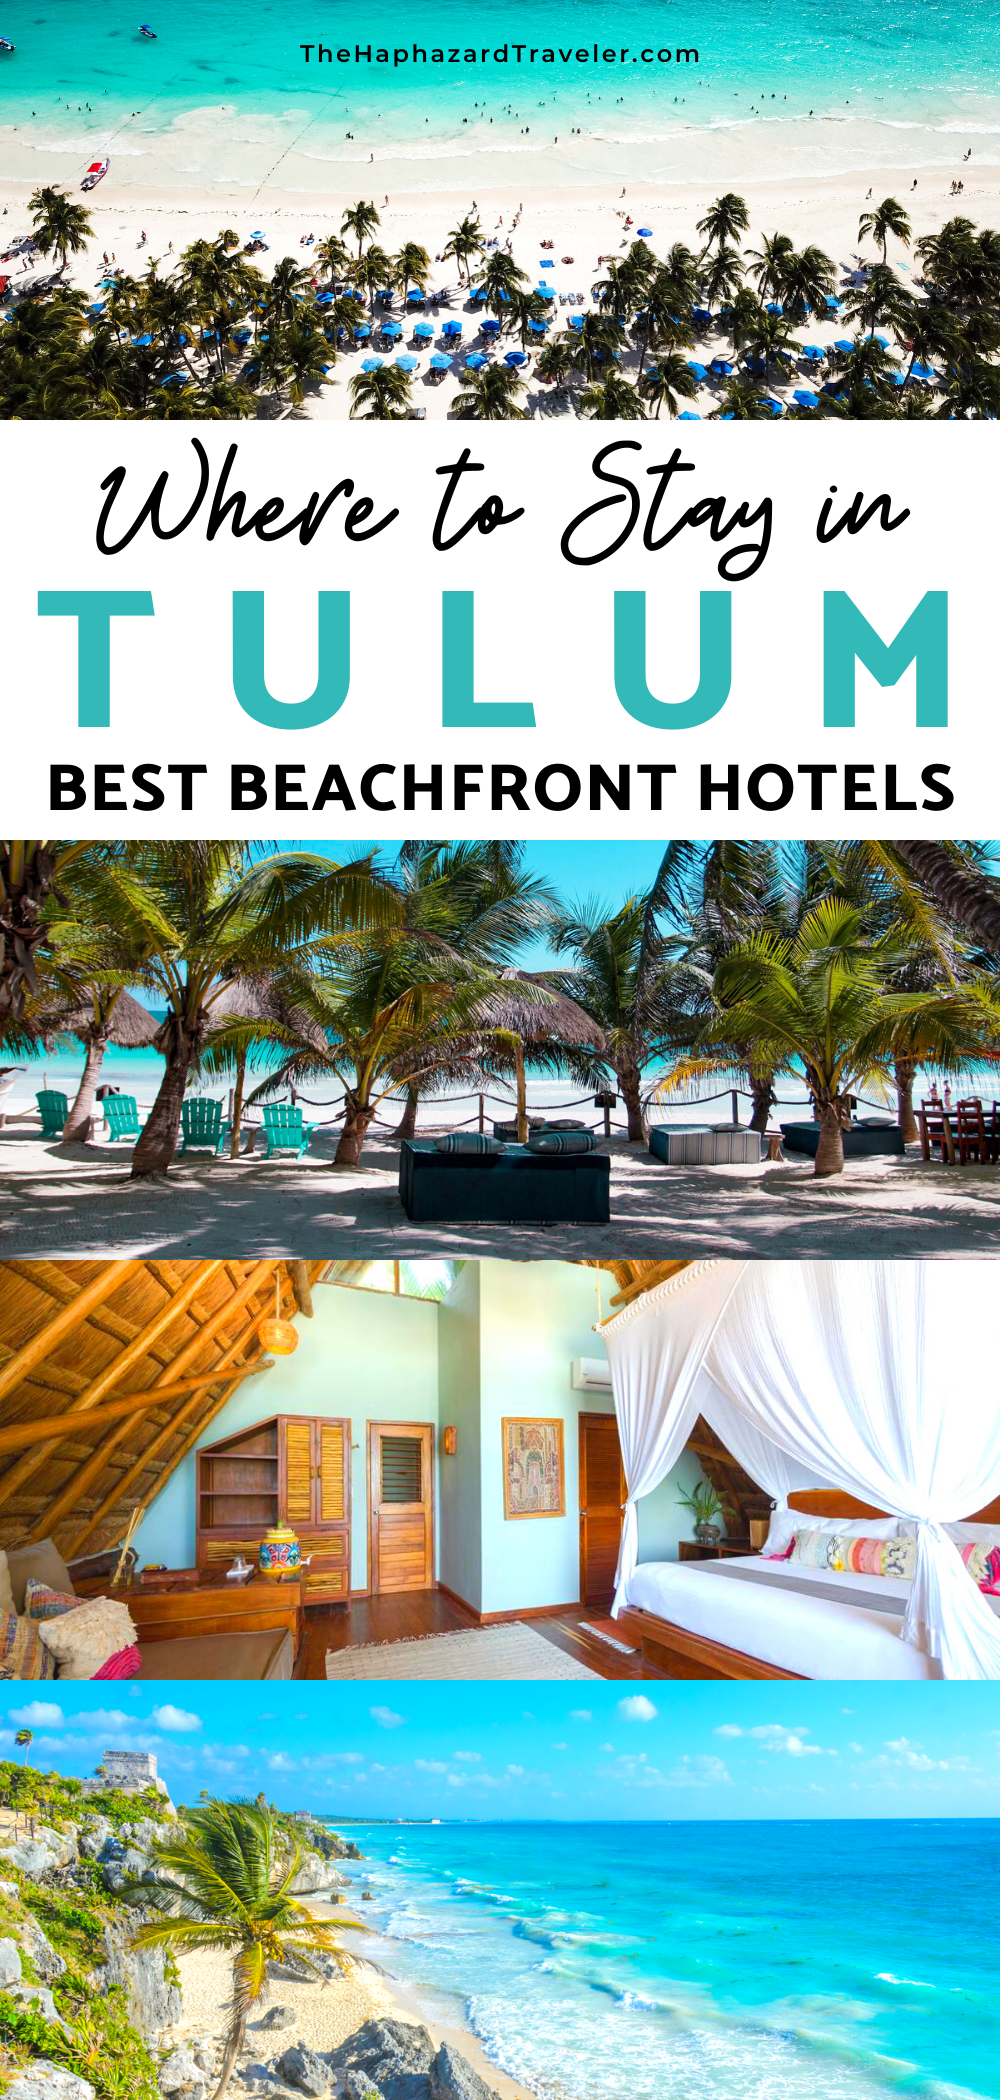 Where To Stay In Tulum Best Tulum Beach Hotels Villas Airbnbs Tulum Beach Hotels Tulum Hotels Mexico Travel